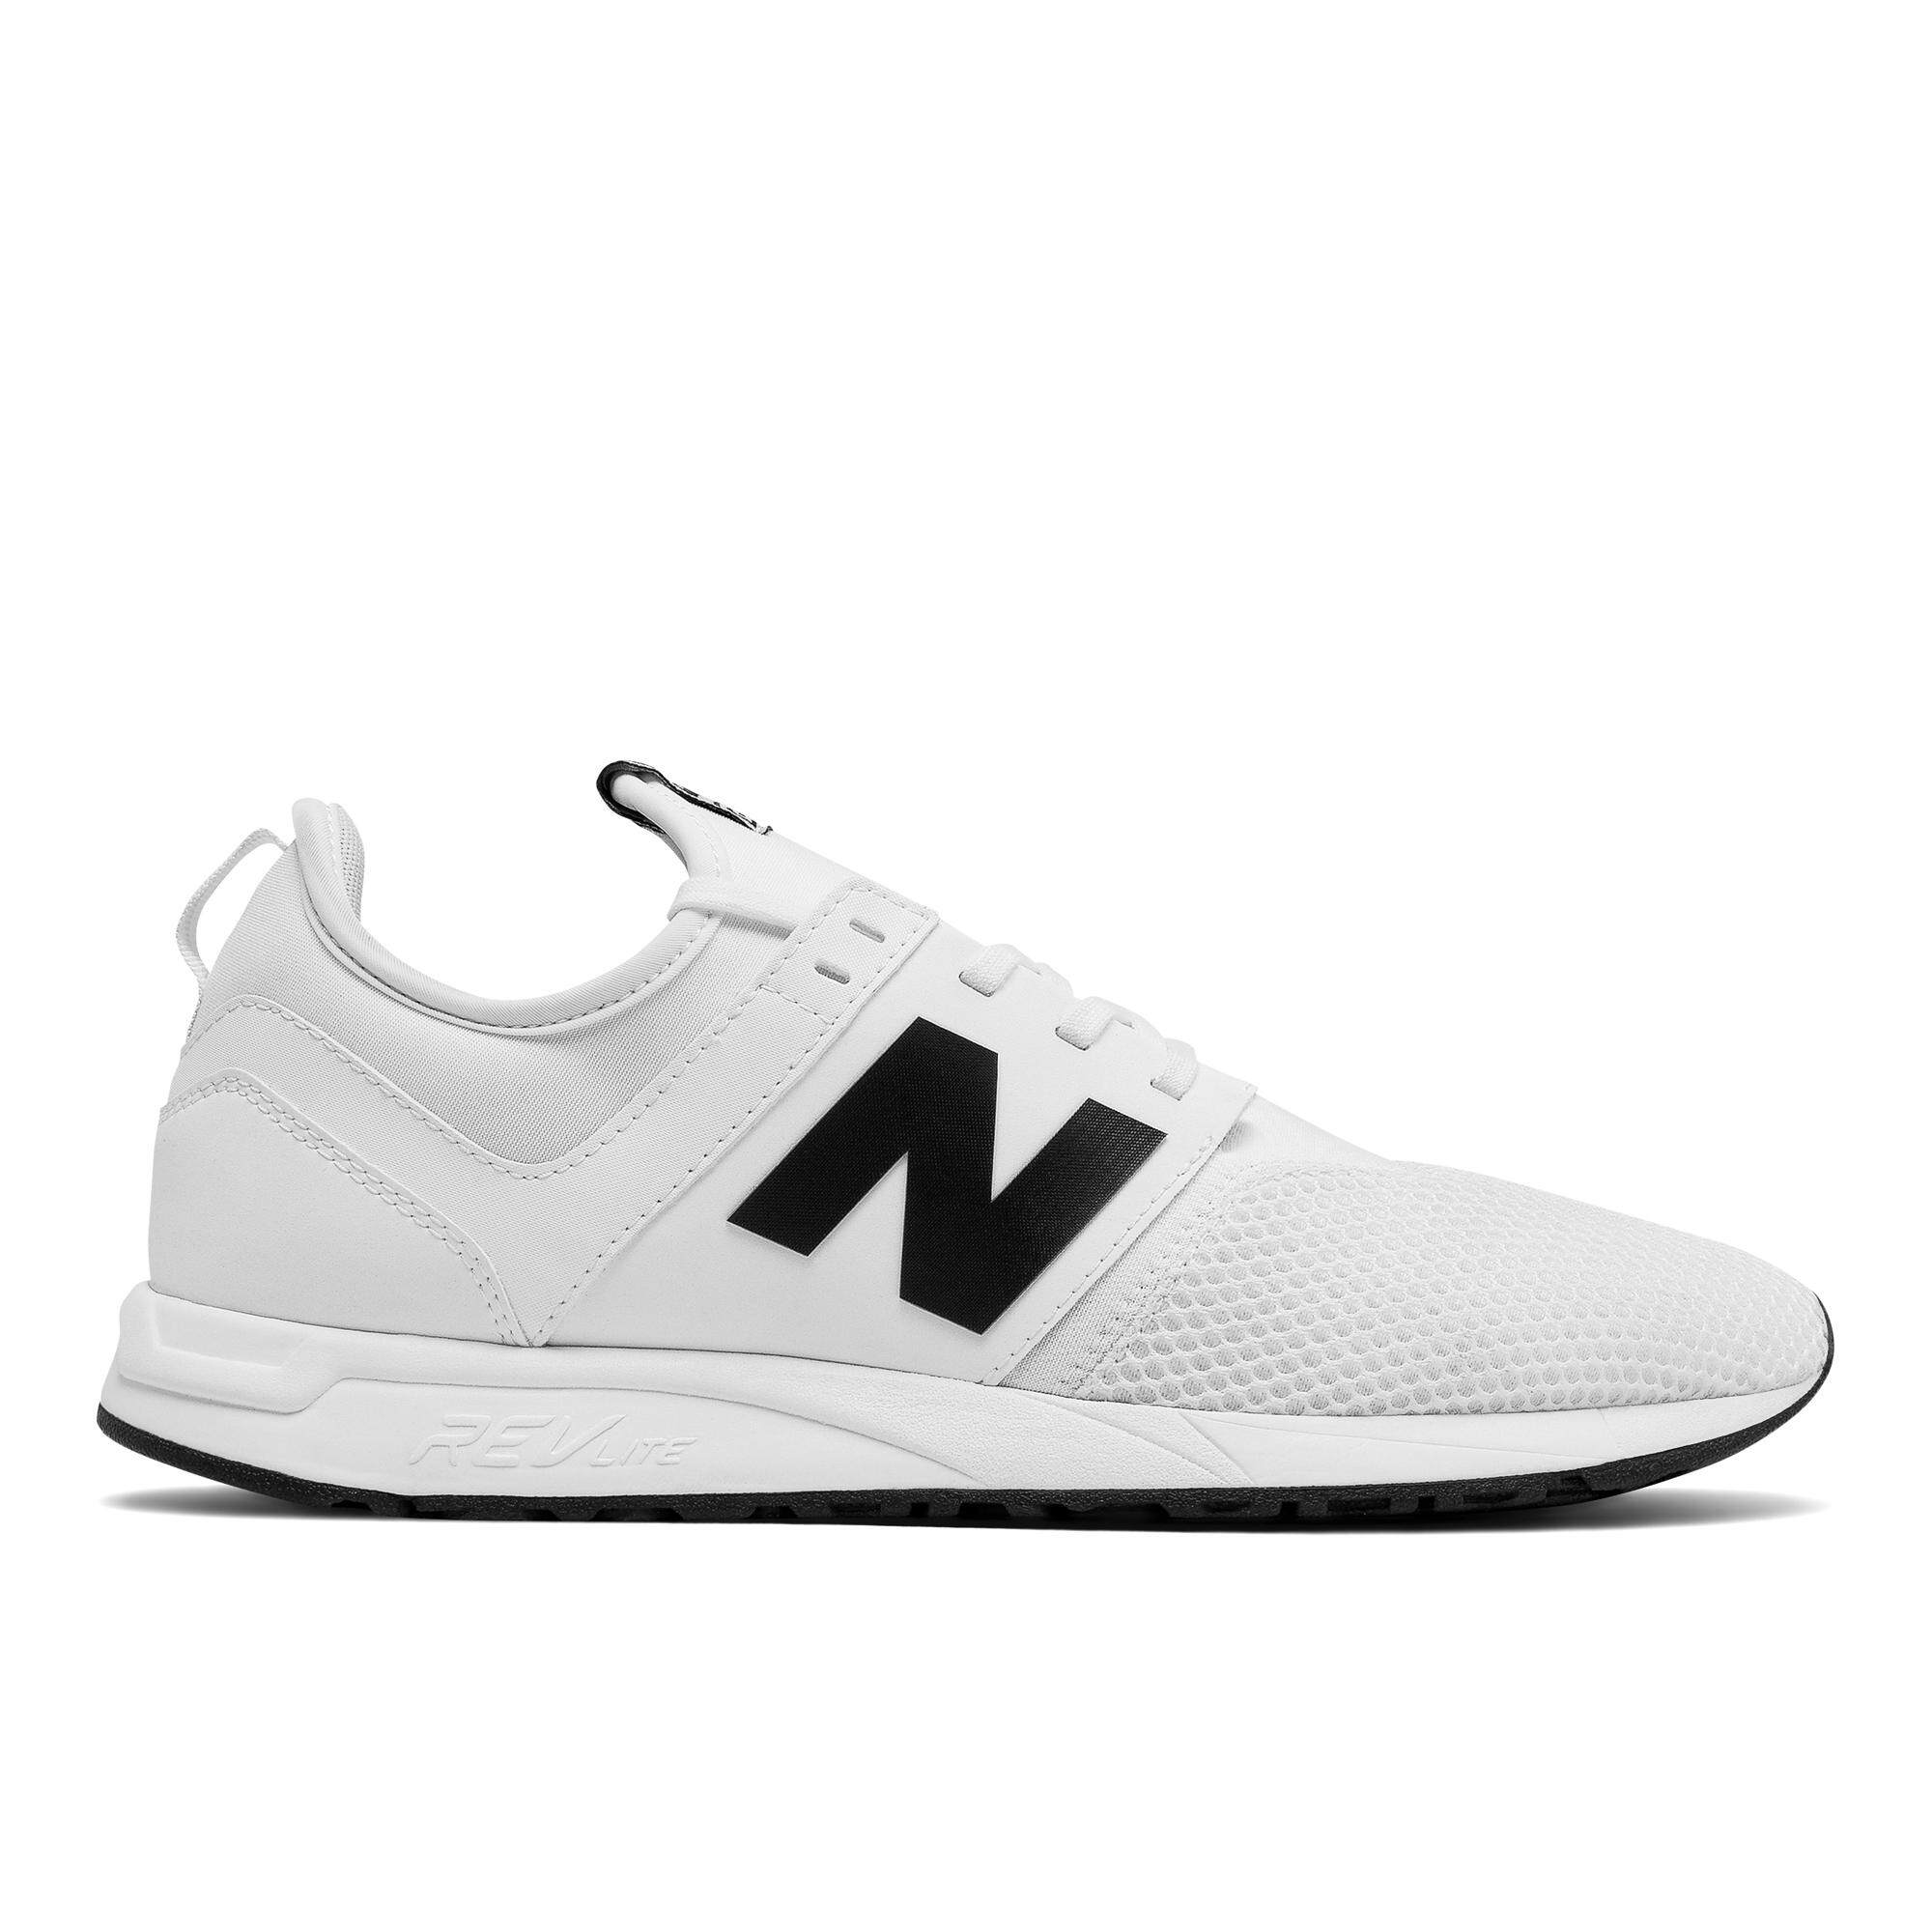 6d30bd00cedb7 Product details of New Balance Men's Lifestyle Shoes - 247 Classic (White/ Black)